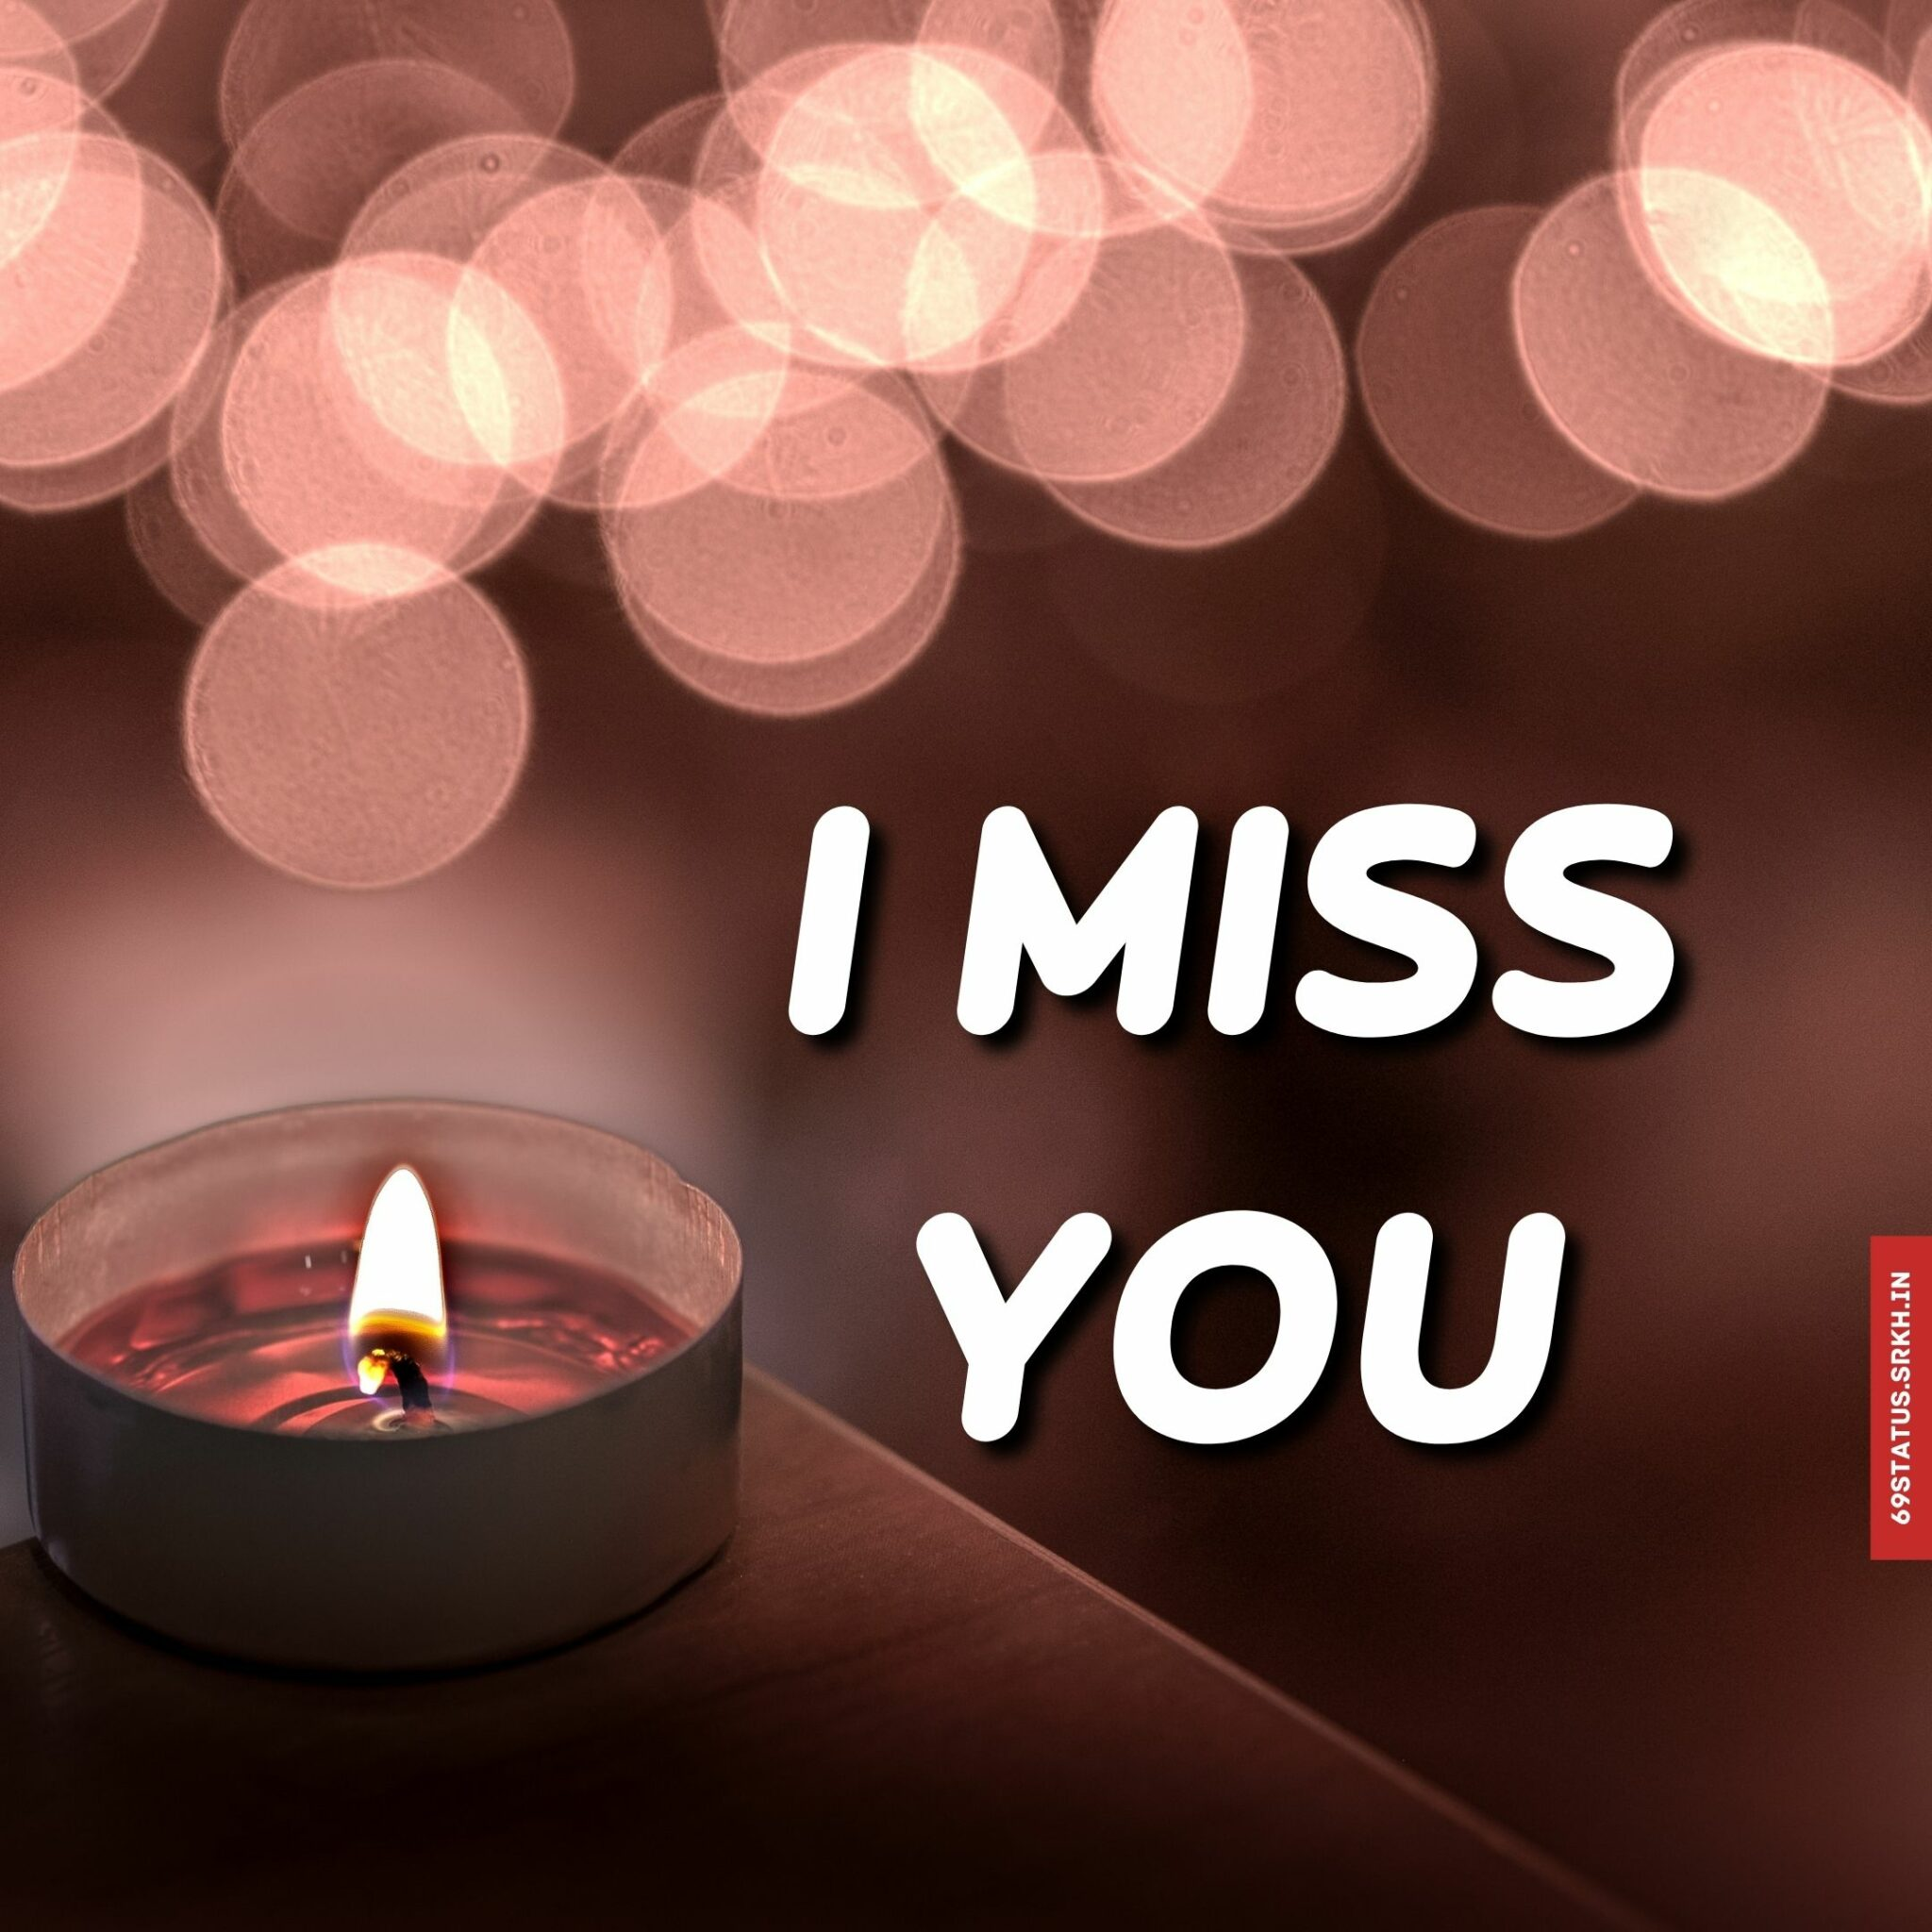 🔥 Romantic miss you images Download free - Images SRkh